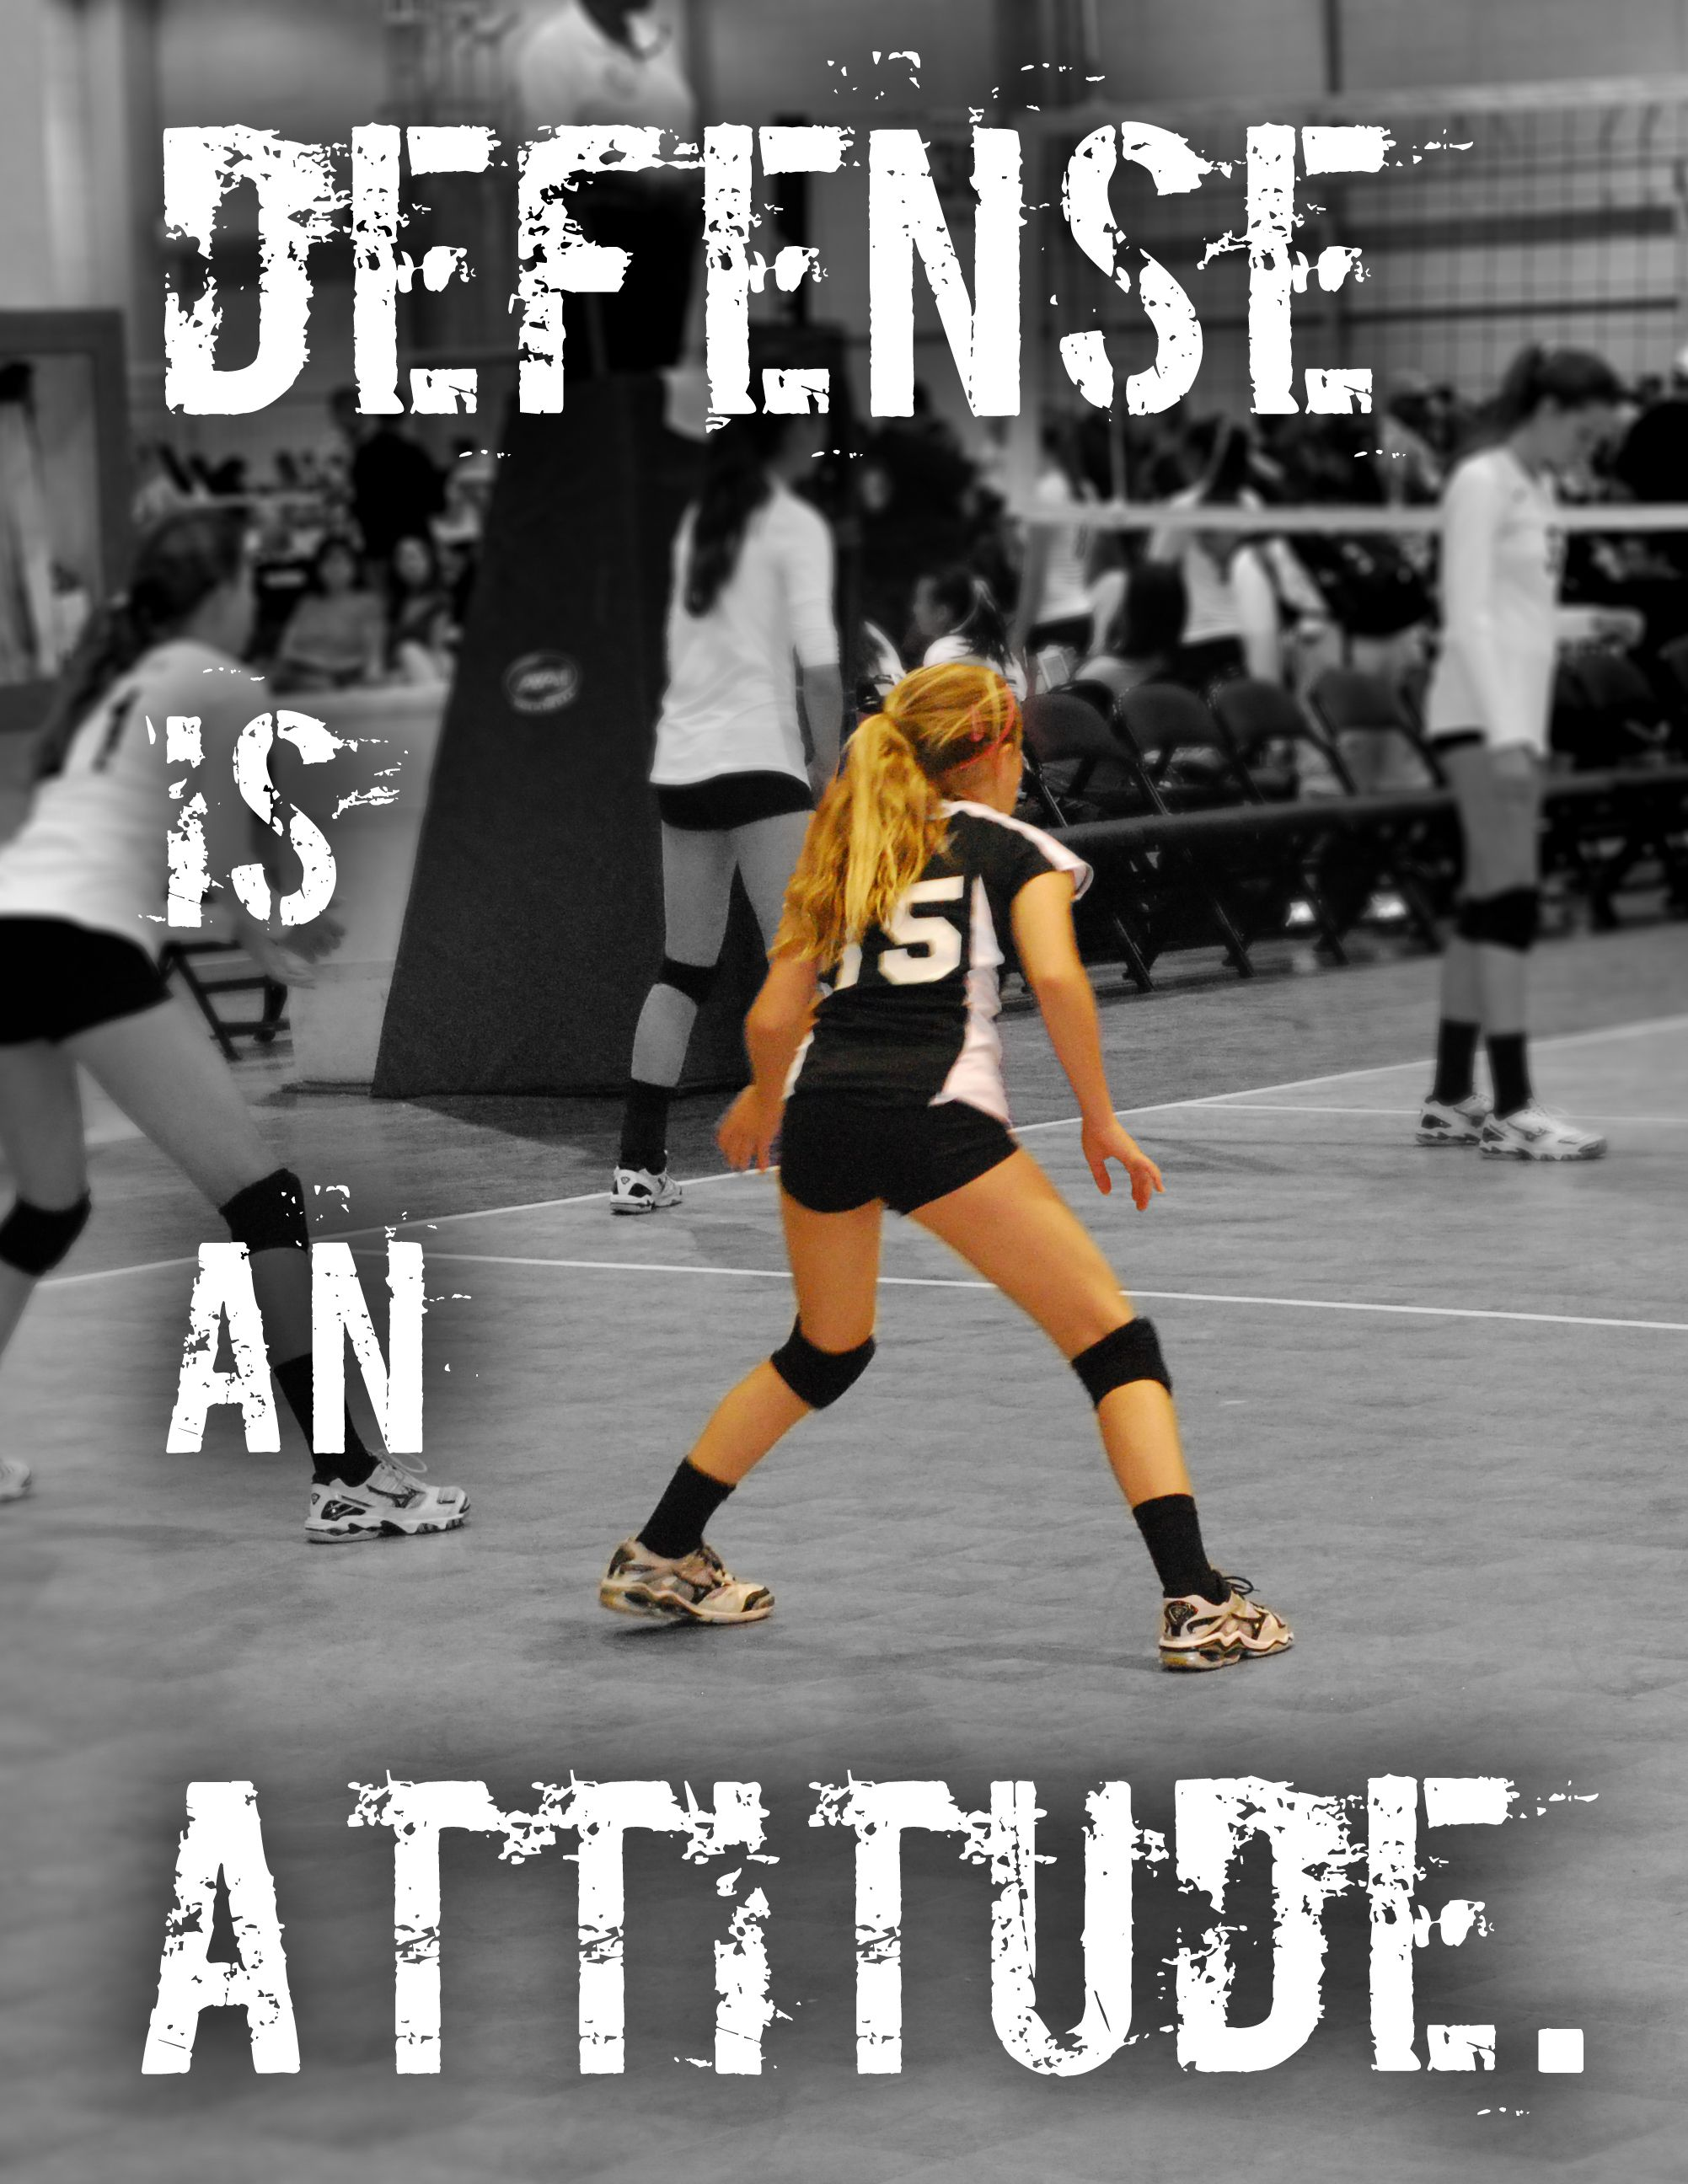 Accelerated Sports Volleyball Quotes Volleyball Memes Volleyball Inspiration